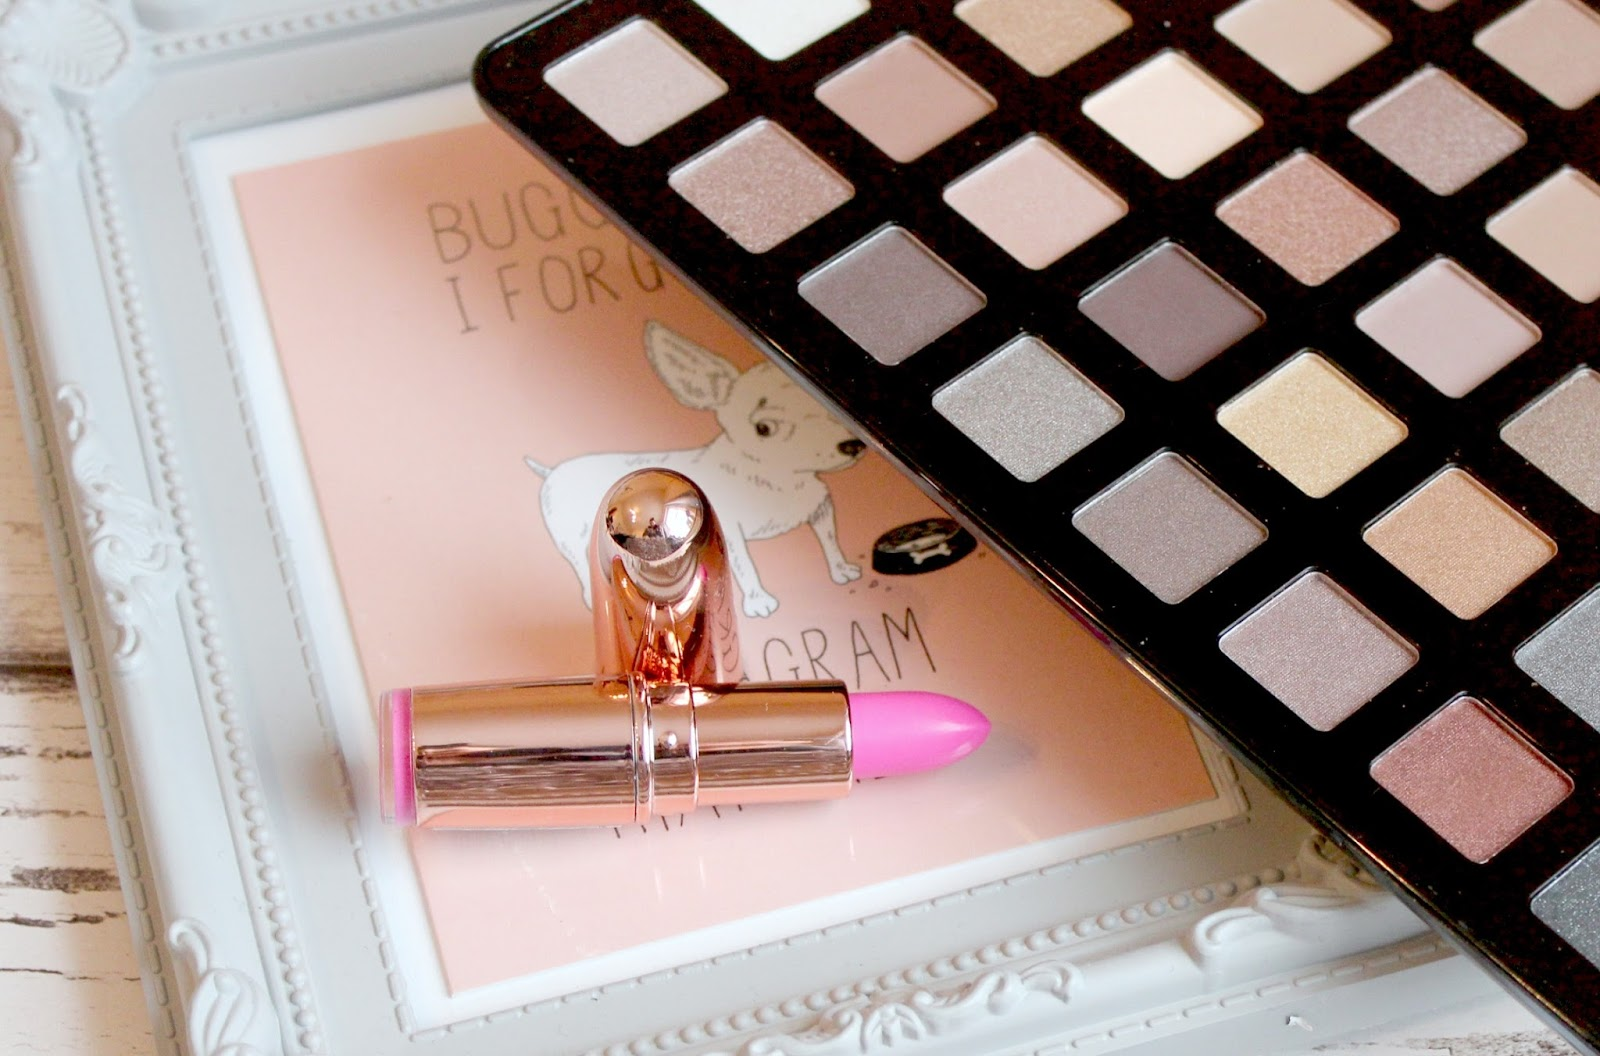 copper-garden-beauty-blogger-makeup-revolution-haul